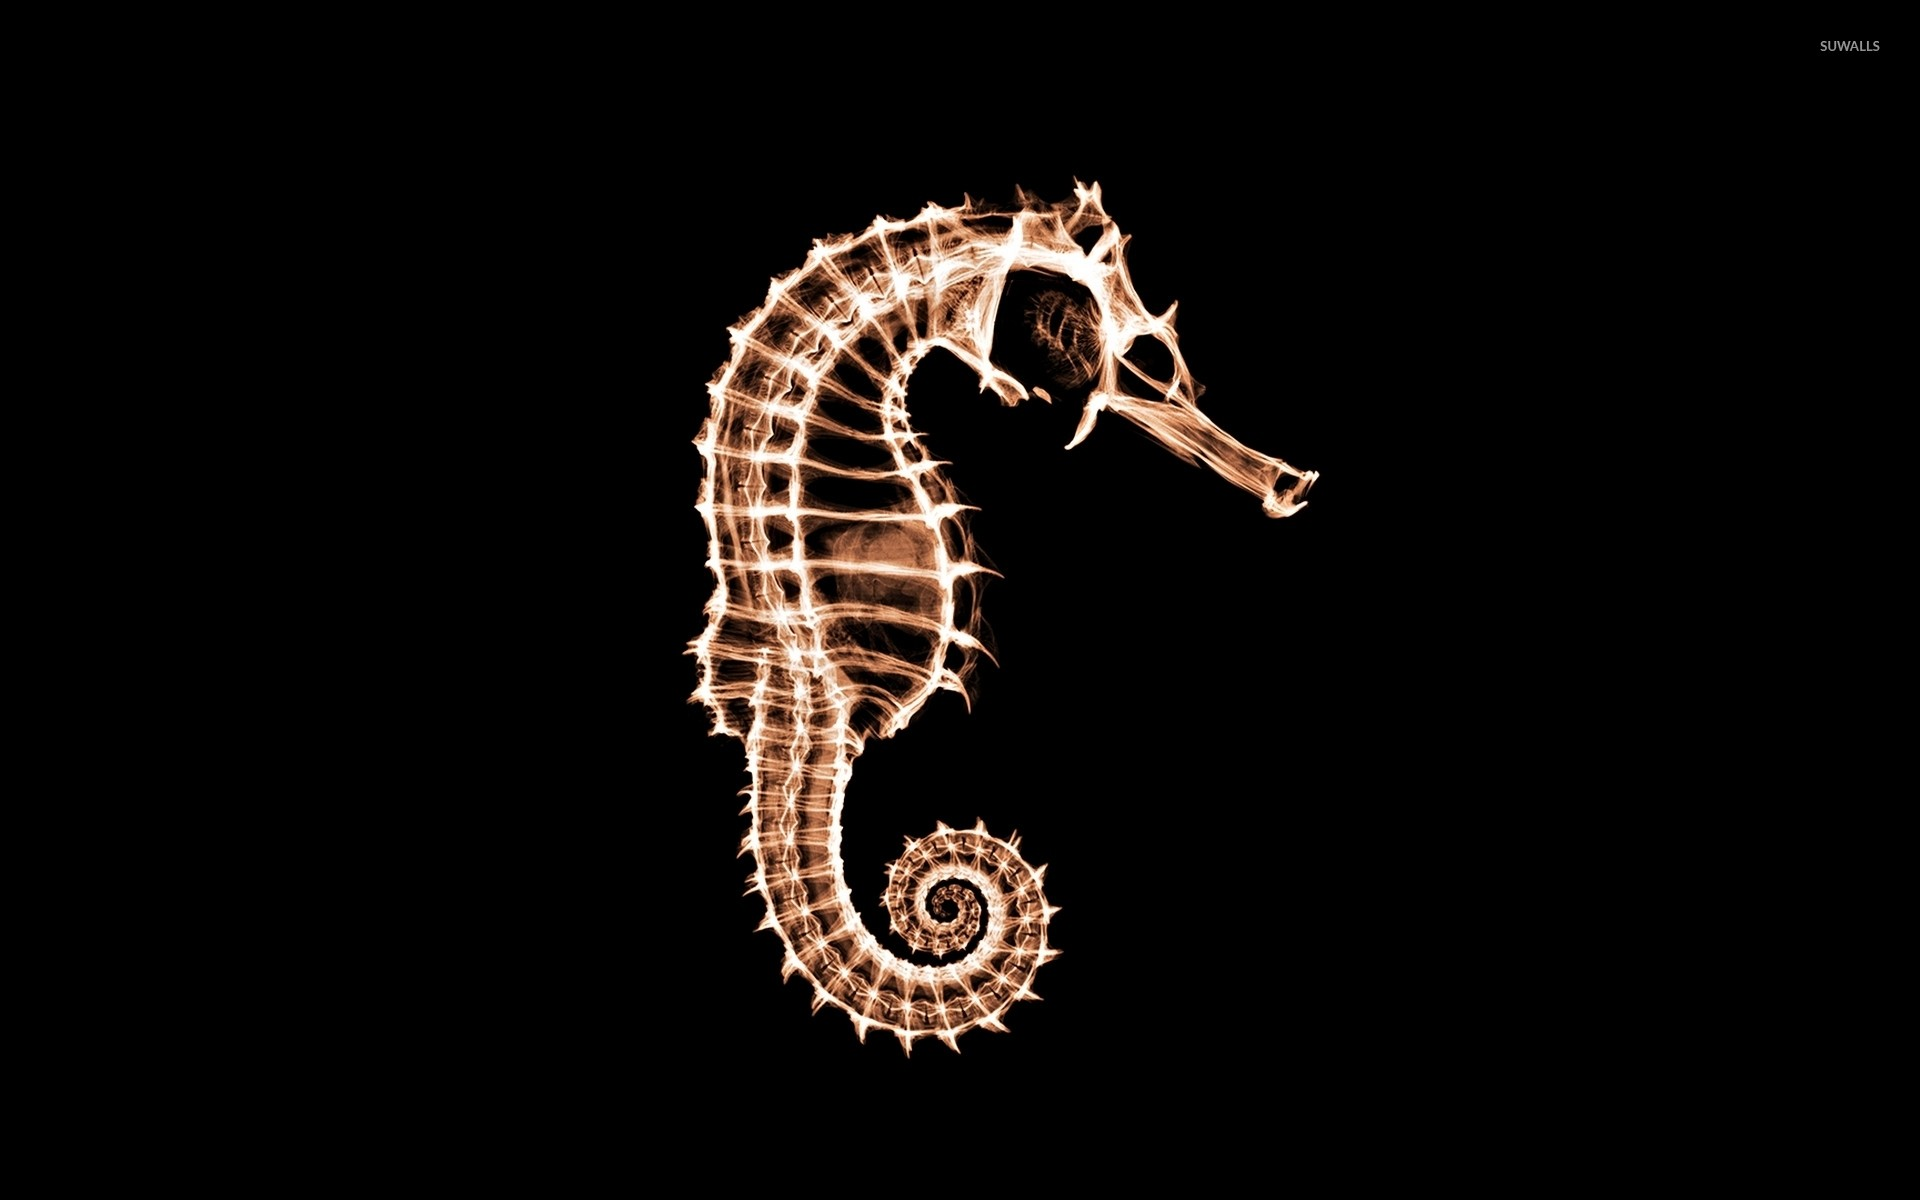 1920x1200 X-ray of a seahorse wallpaper  jpg